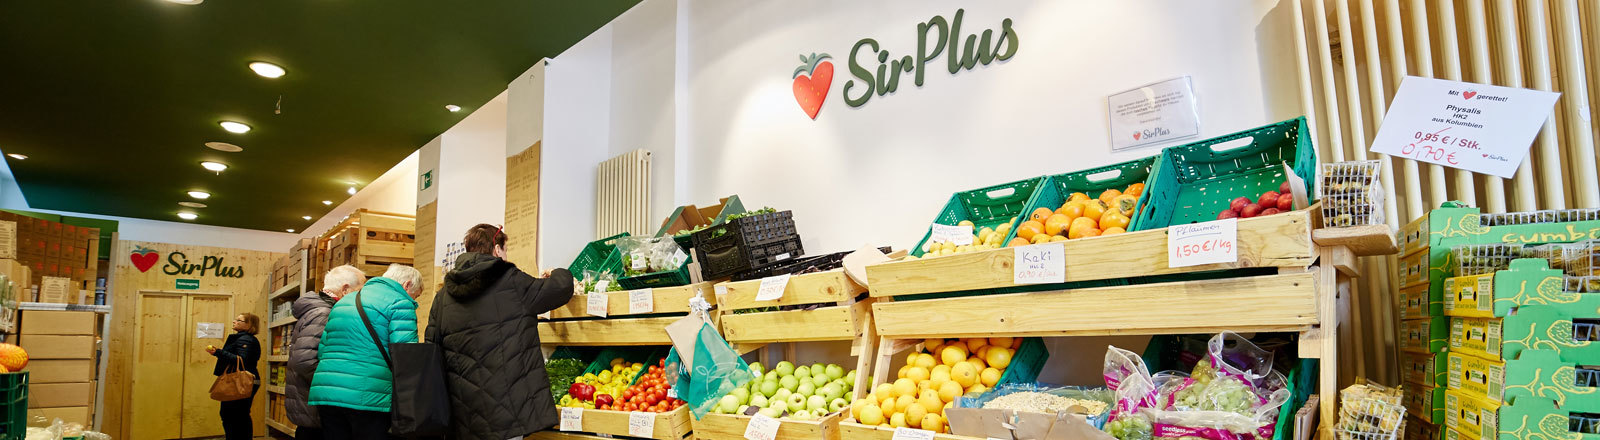 SirPlus Laden in Berlin